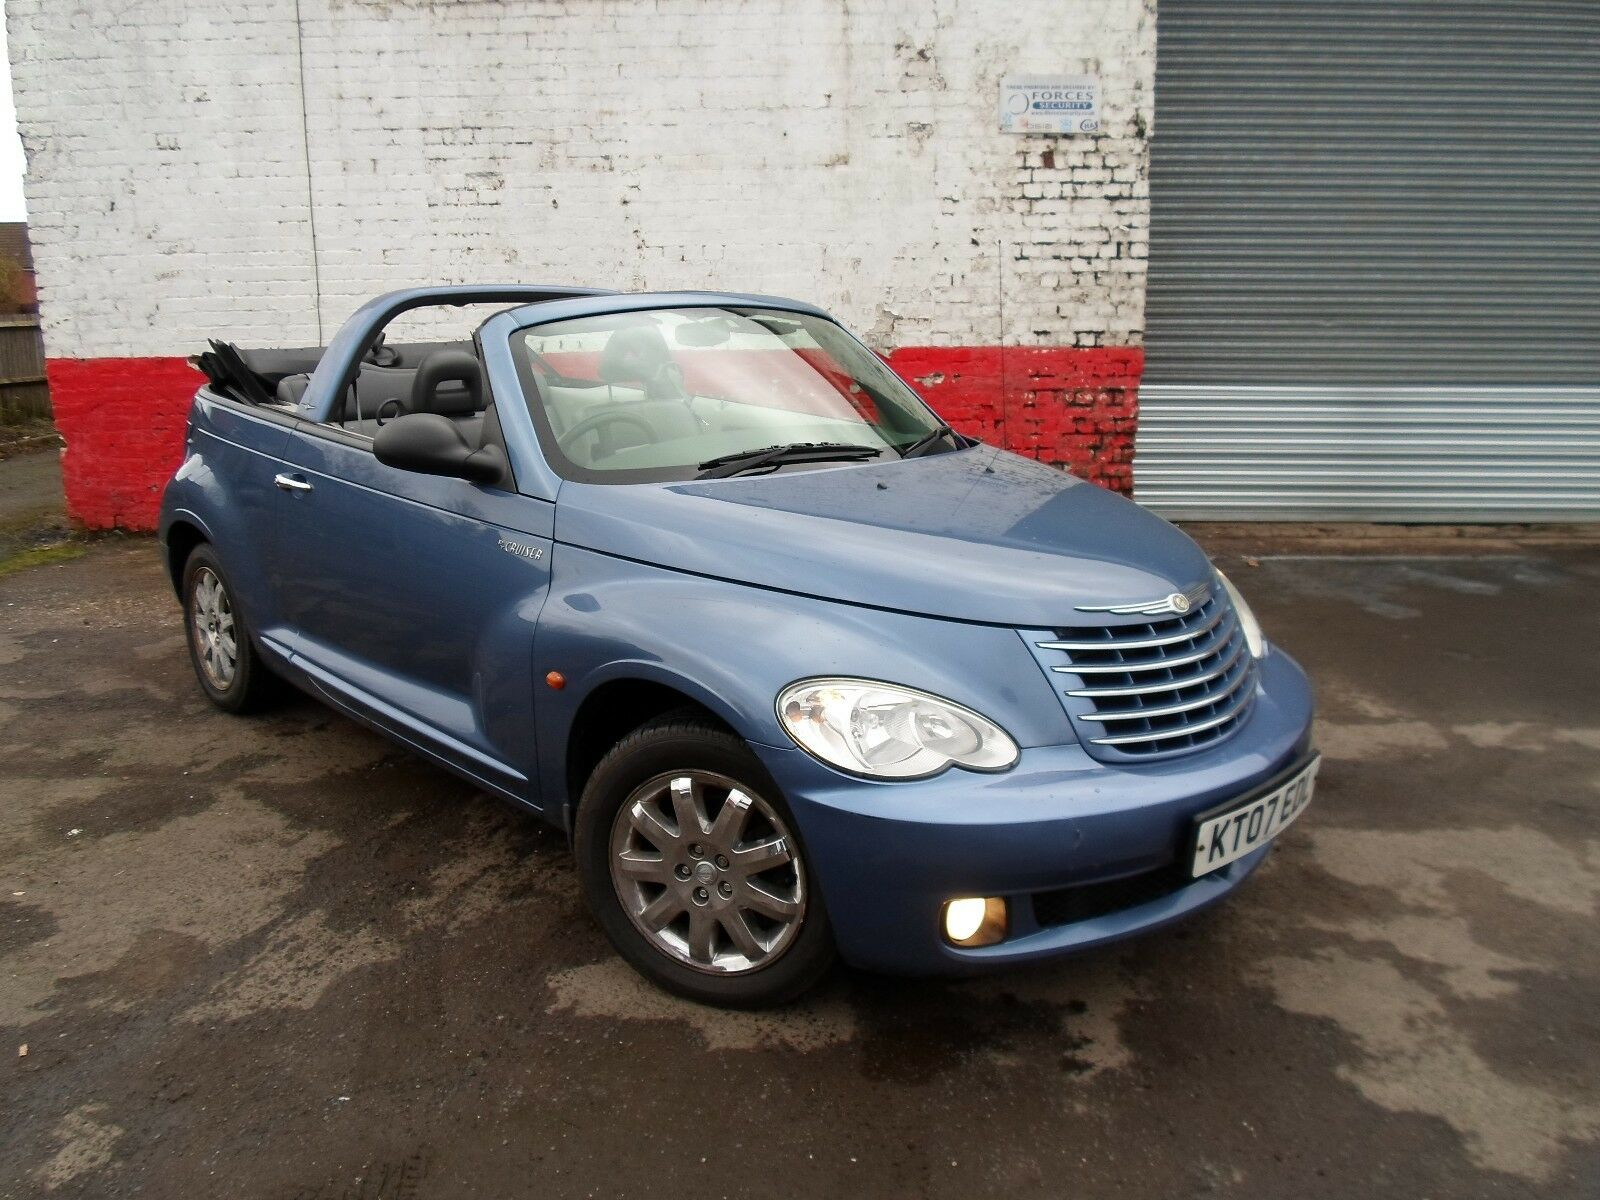 2007 07 chrysler pt cruiser 2 4 ltd edition cabriolet. Black Bedroom Furniture Sets. Home Design Ideas